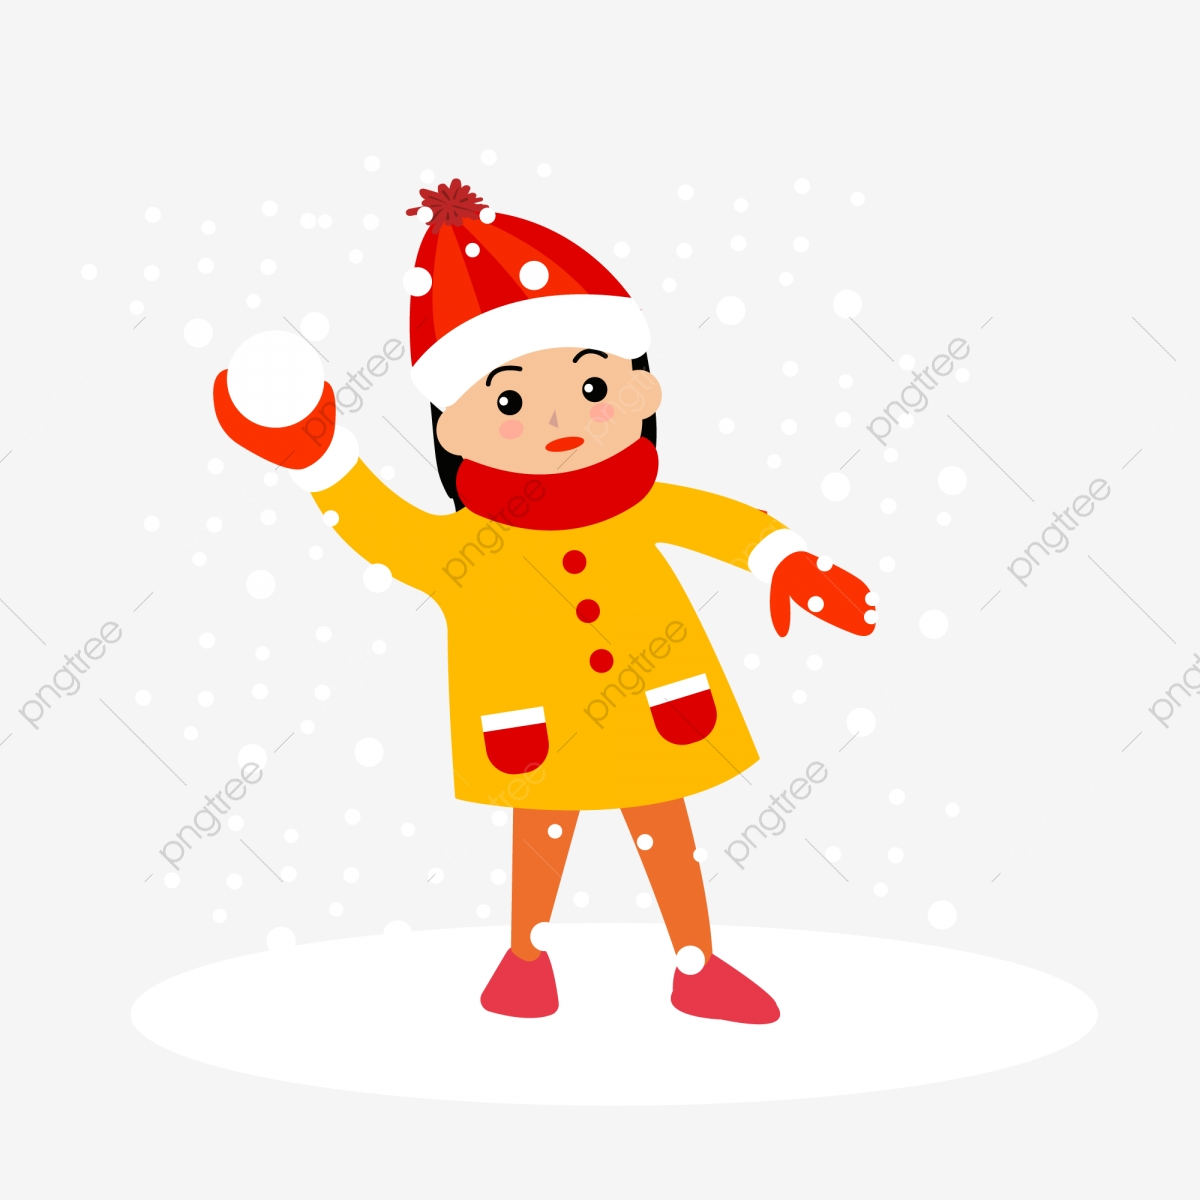 Clipart winter child, Clipart winter child Transparent FREE for download on  WebStockReview 2020